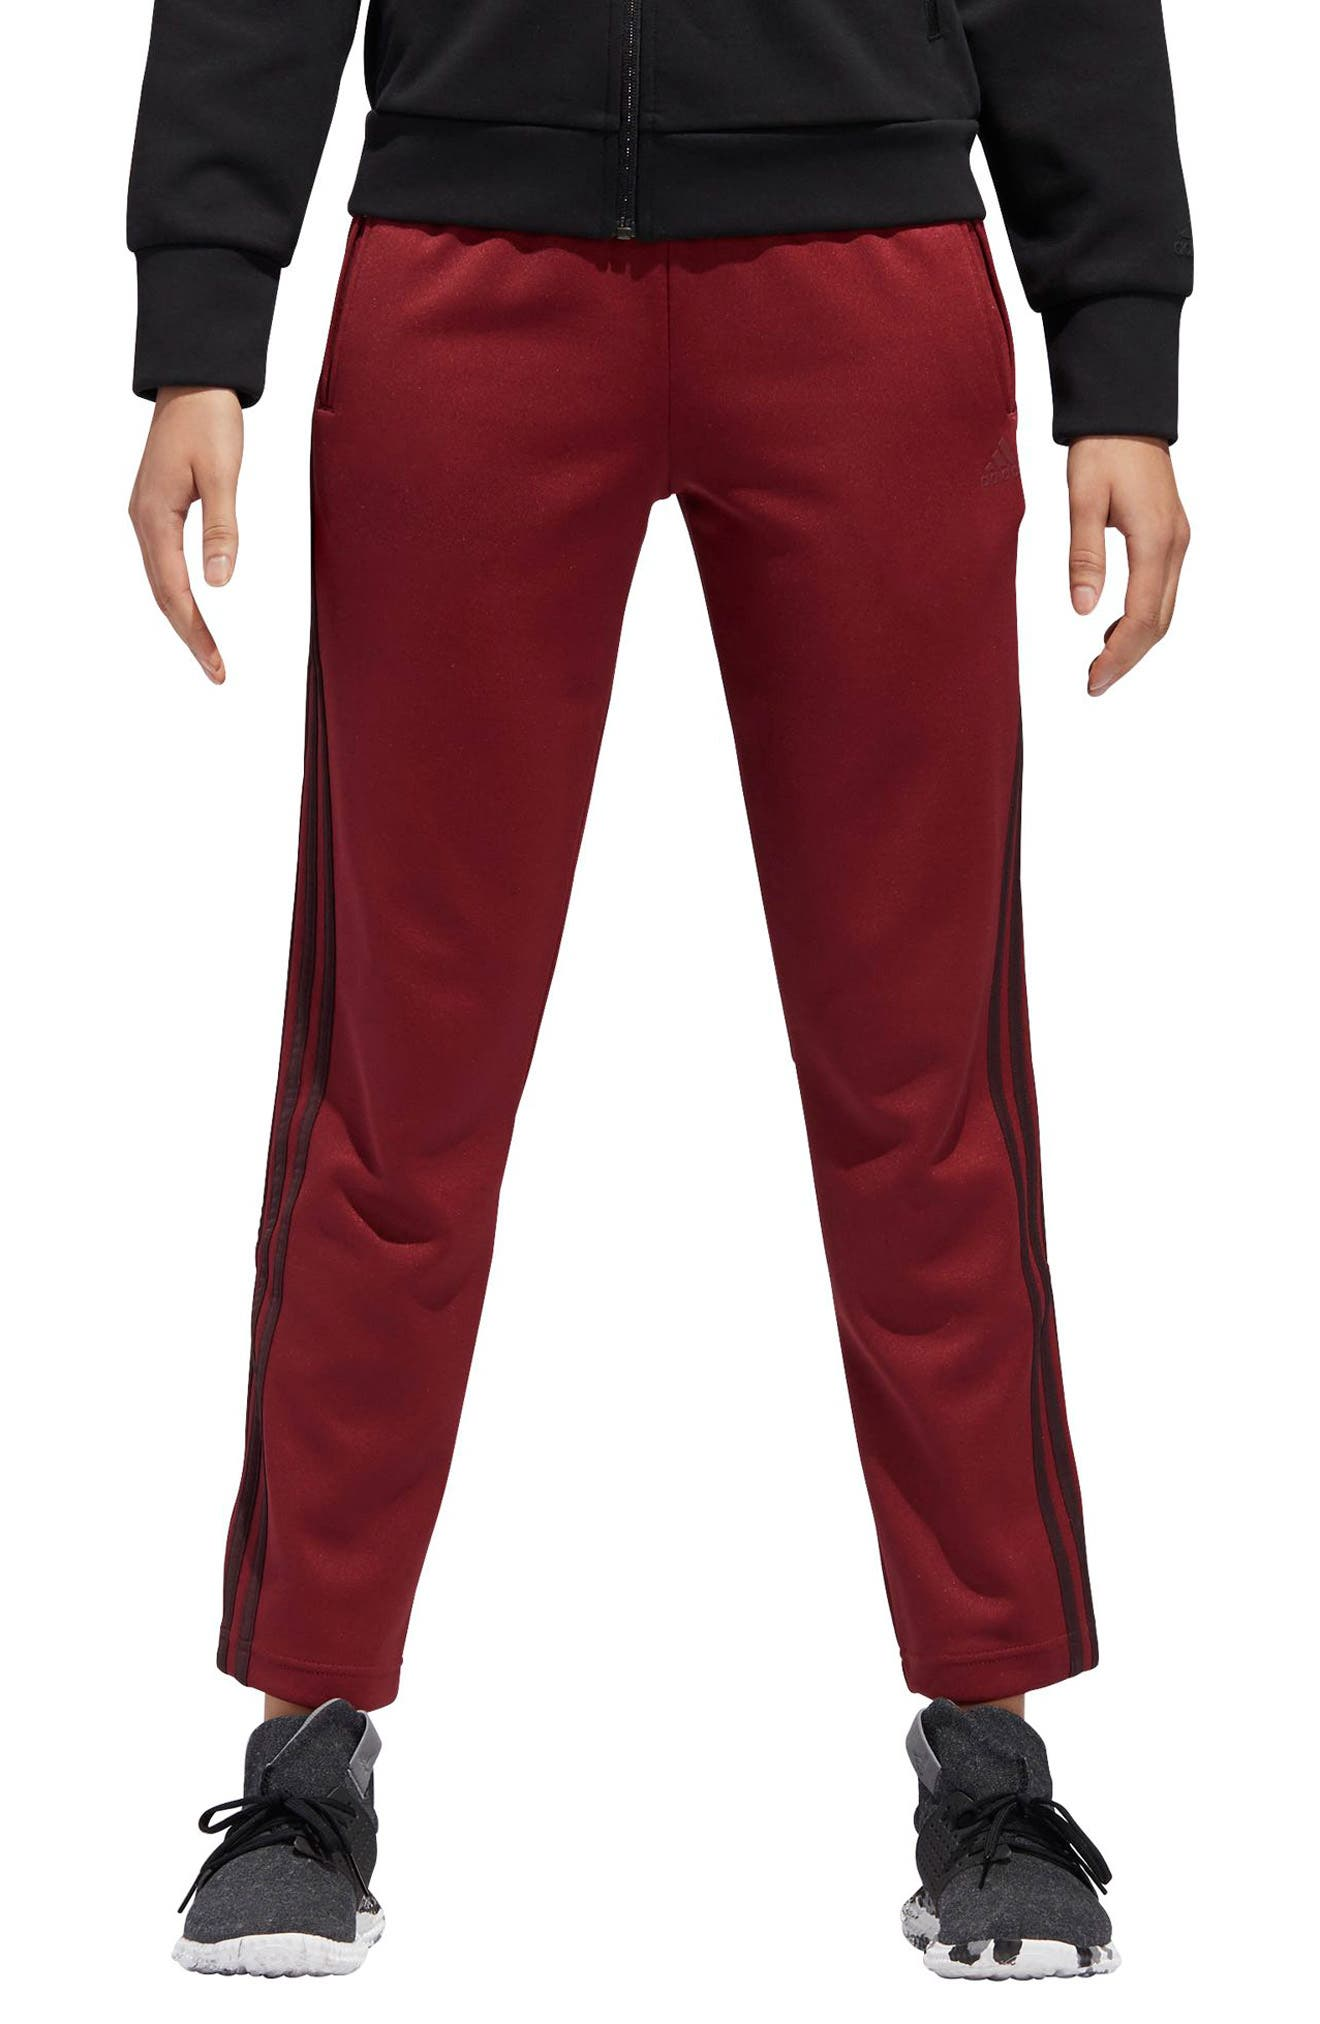 Side-Snap Ankle Track Pants in Noble Maroon/Night Red